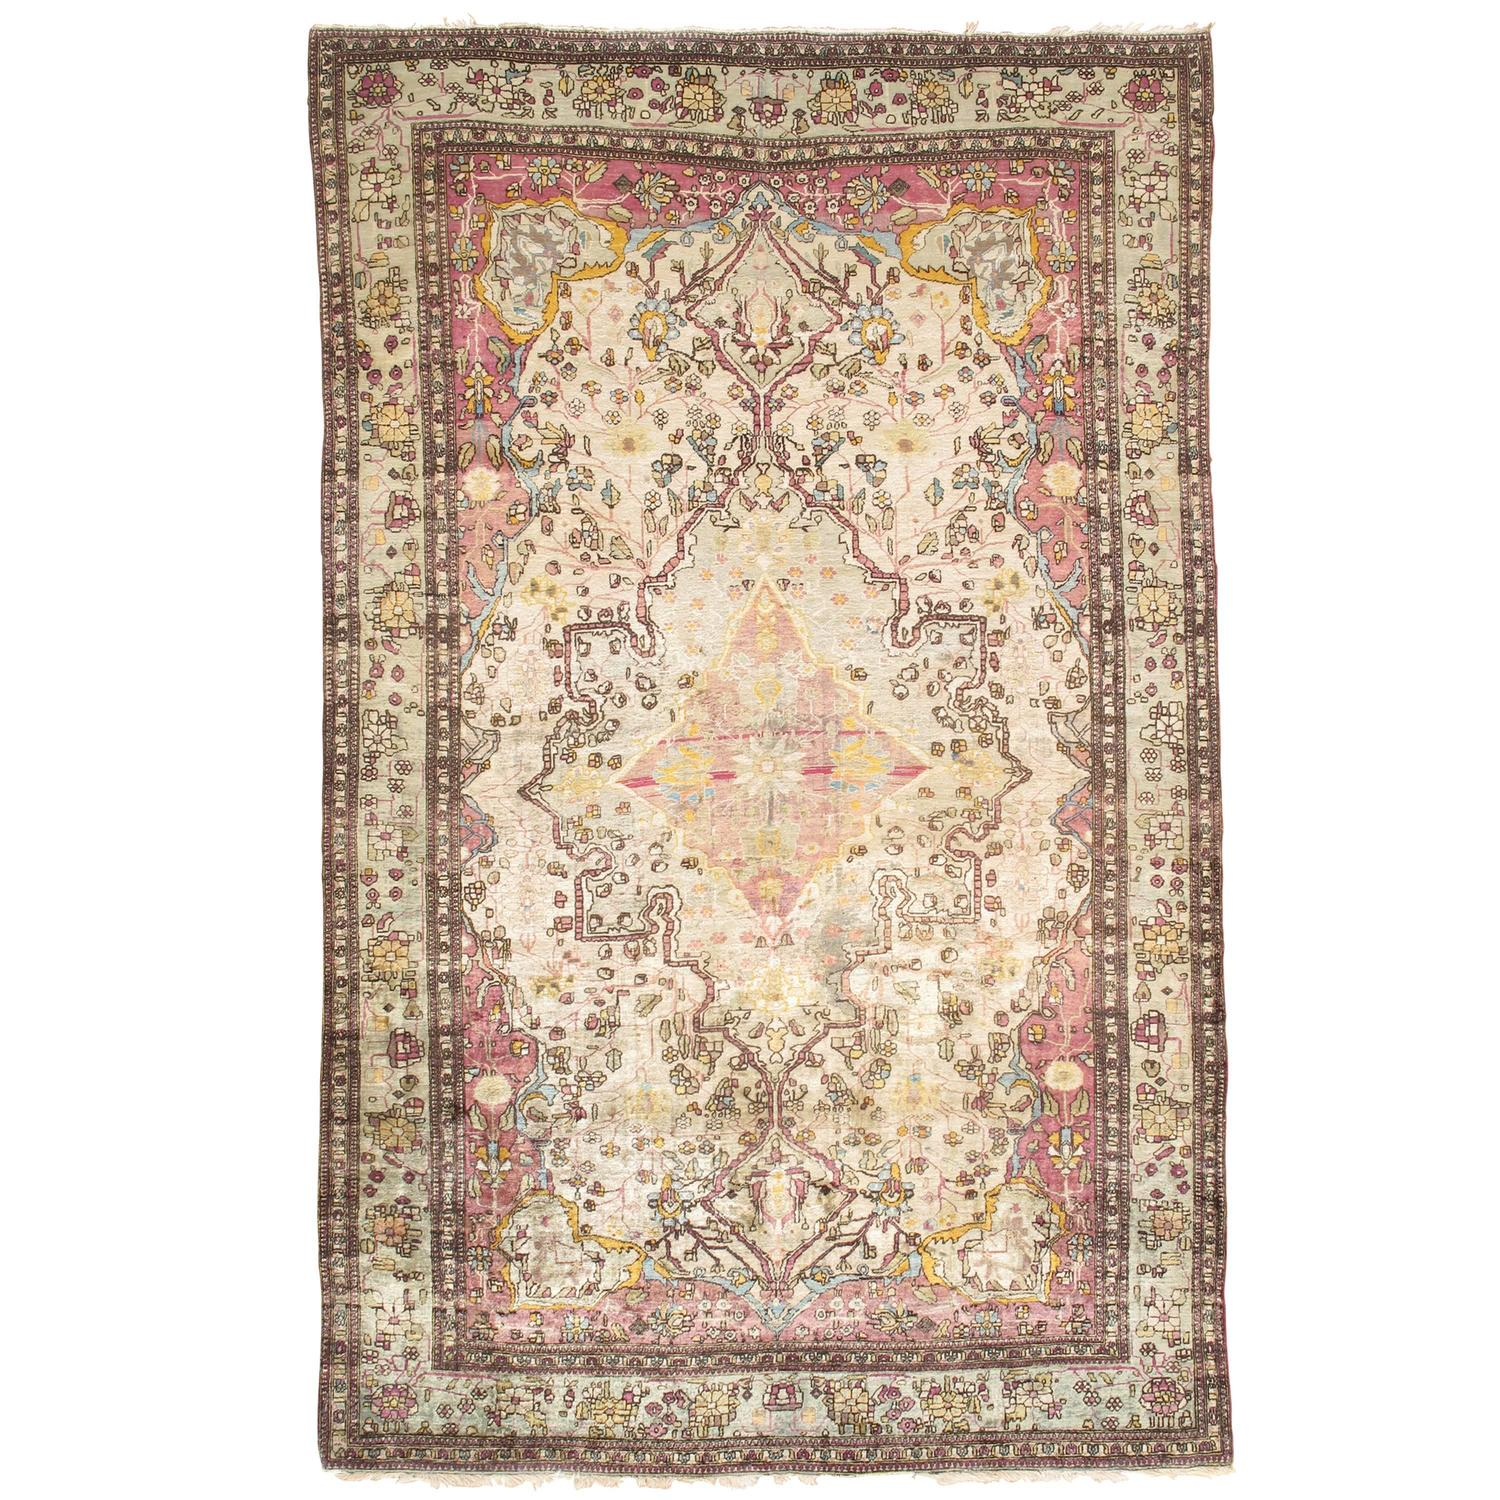 Ivory Wool And Silk Persian Naein Area Rug For Sale At 1stdibs: Antique Silk Montasham Kashan Rug, Ivory Hand Made